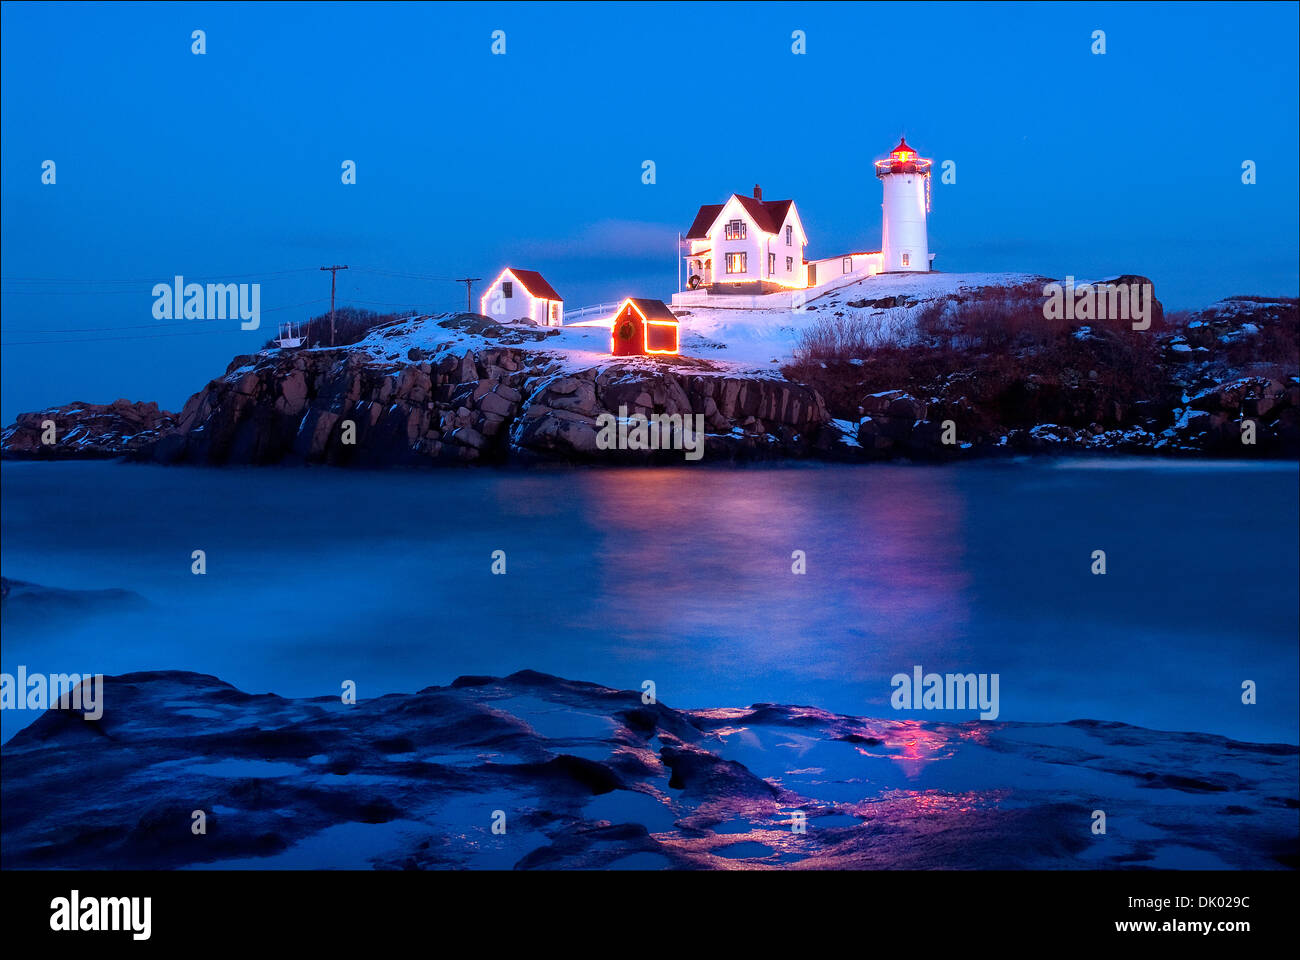 Maine Christmas Lights Stock Photos & Maine Christmas Lights Stock ...